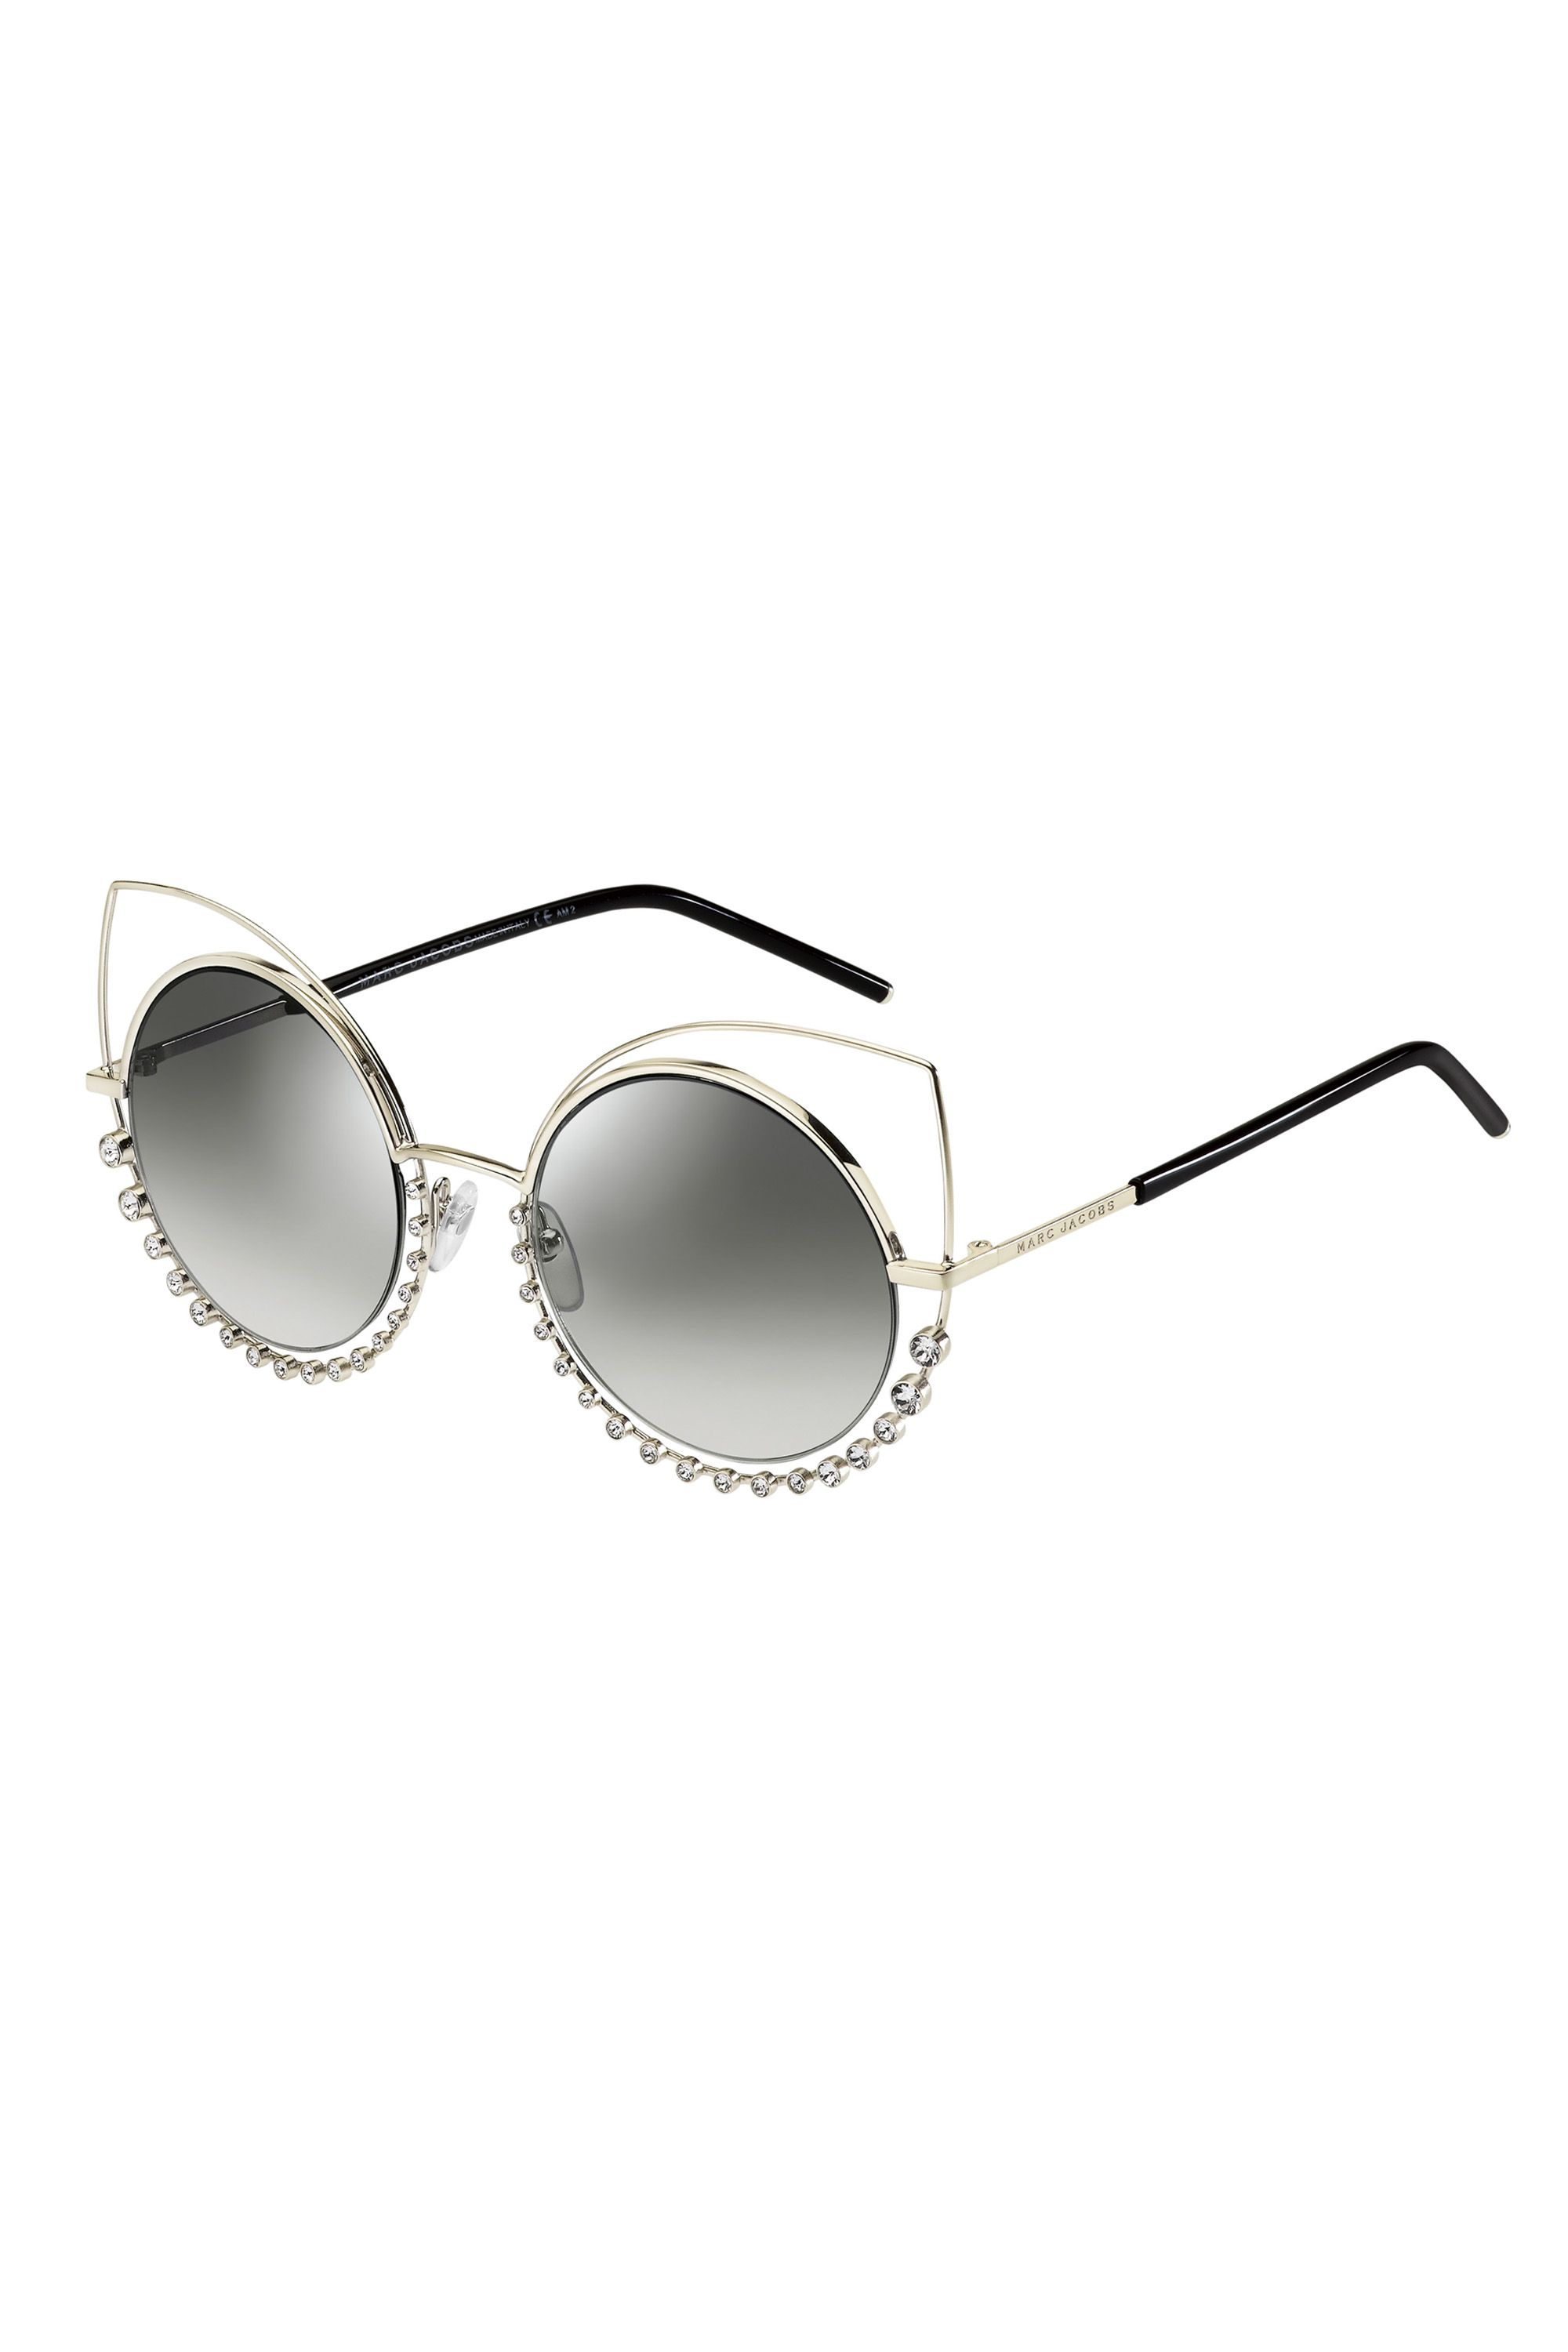 16 Pairs of Cat Eye Sunglasses You\'ll Want to Wear All the Time | Gafas